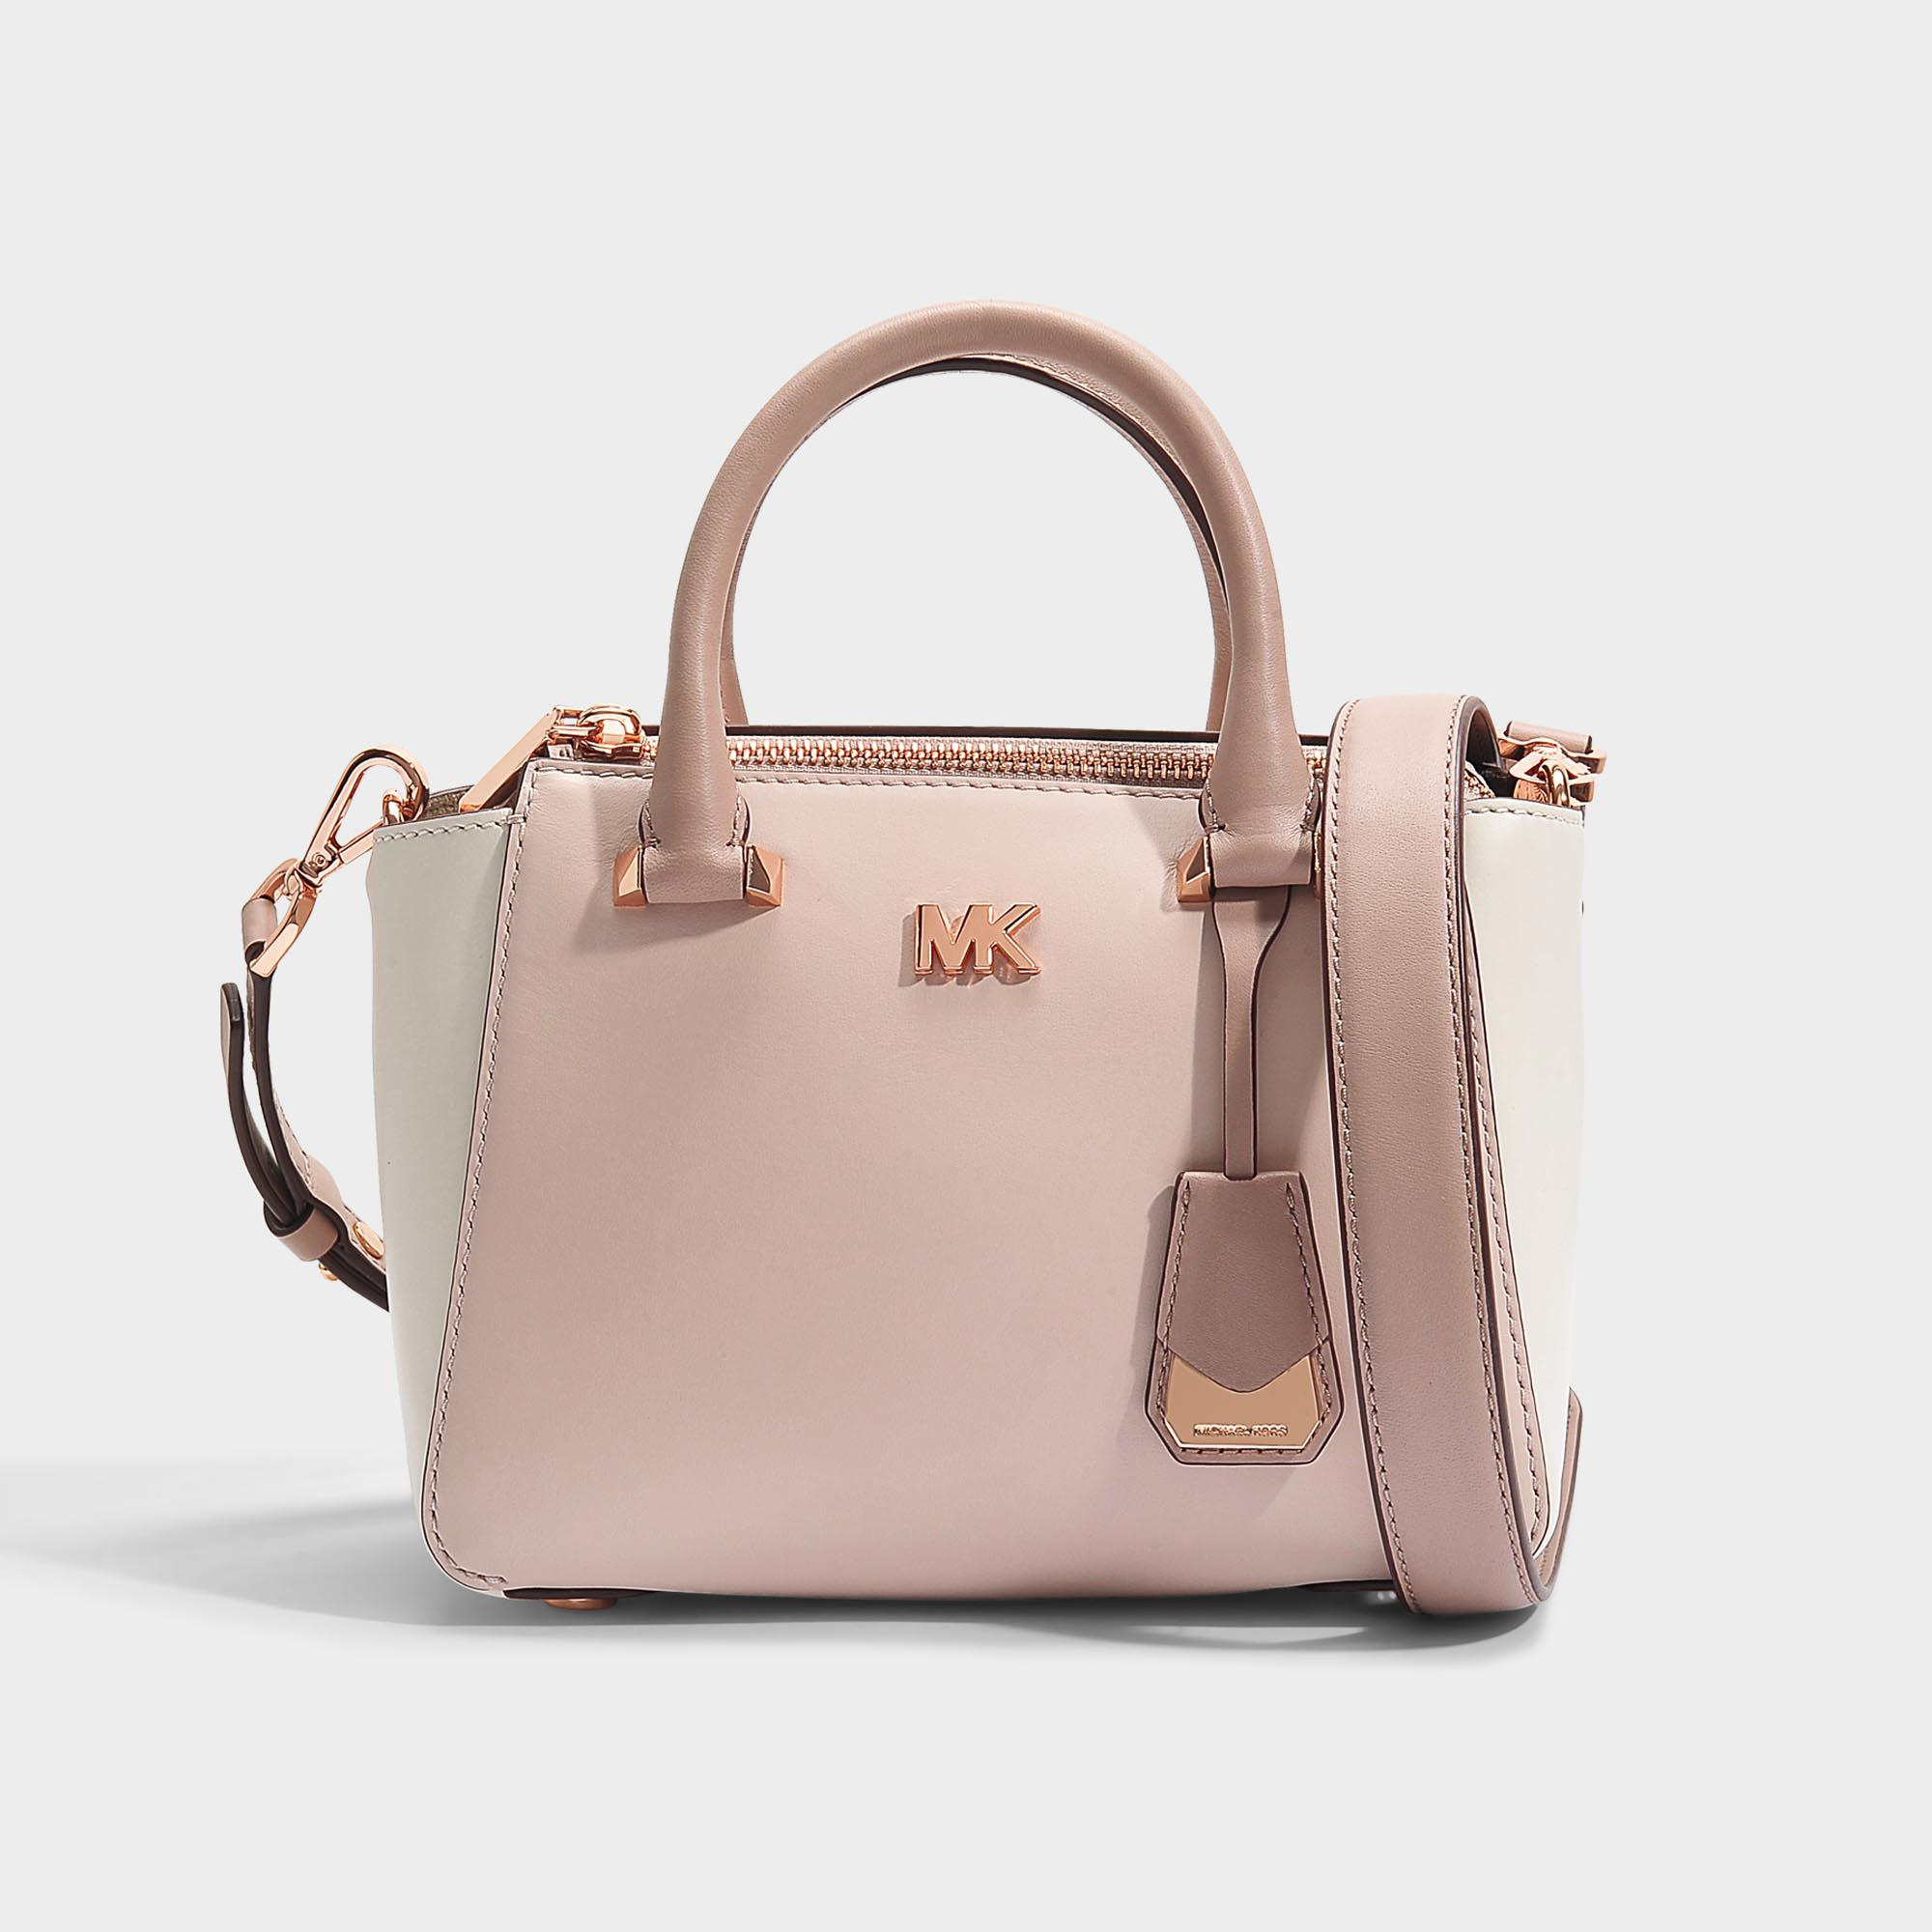 d4daf4cb5003 ... best price lyst michael michael kors nolita mini messenger bag in pink  and dac1e 7a6e9